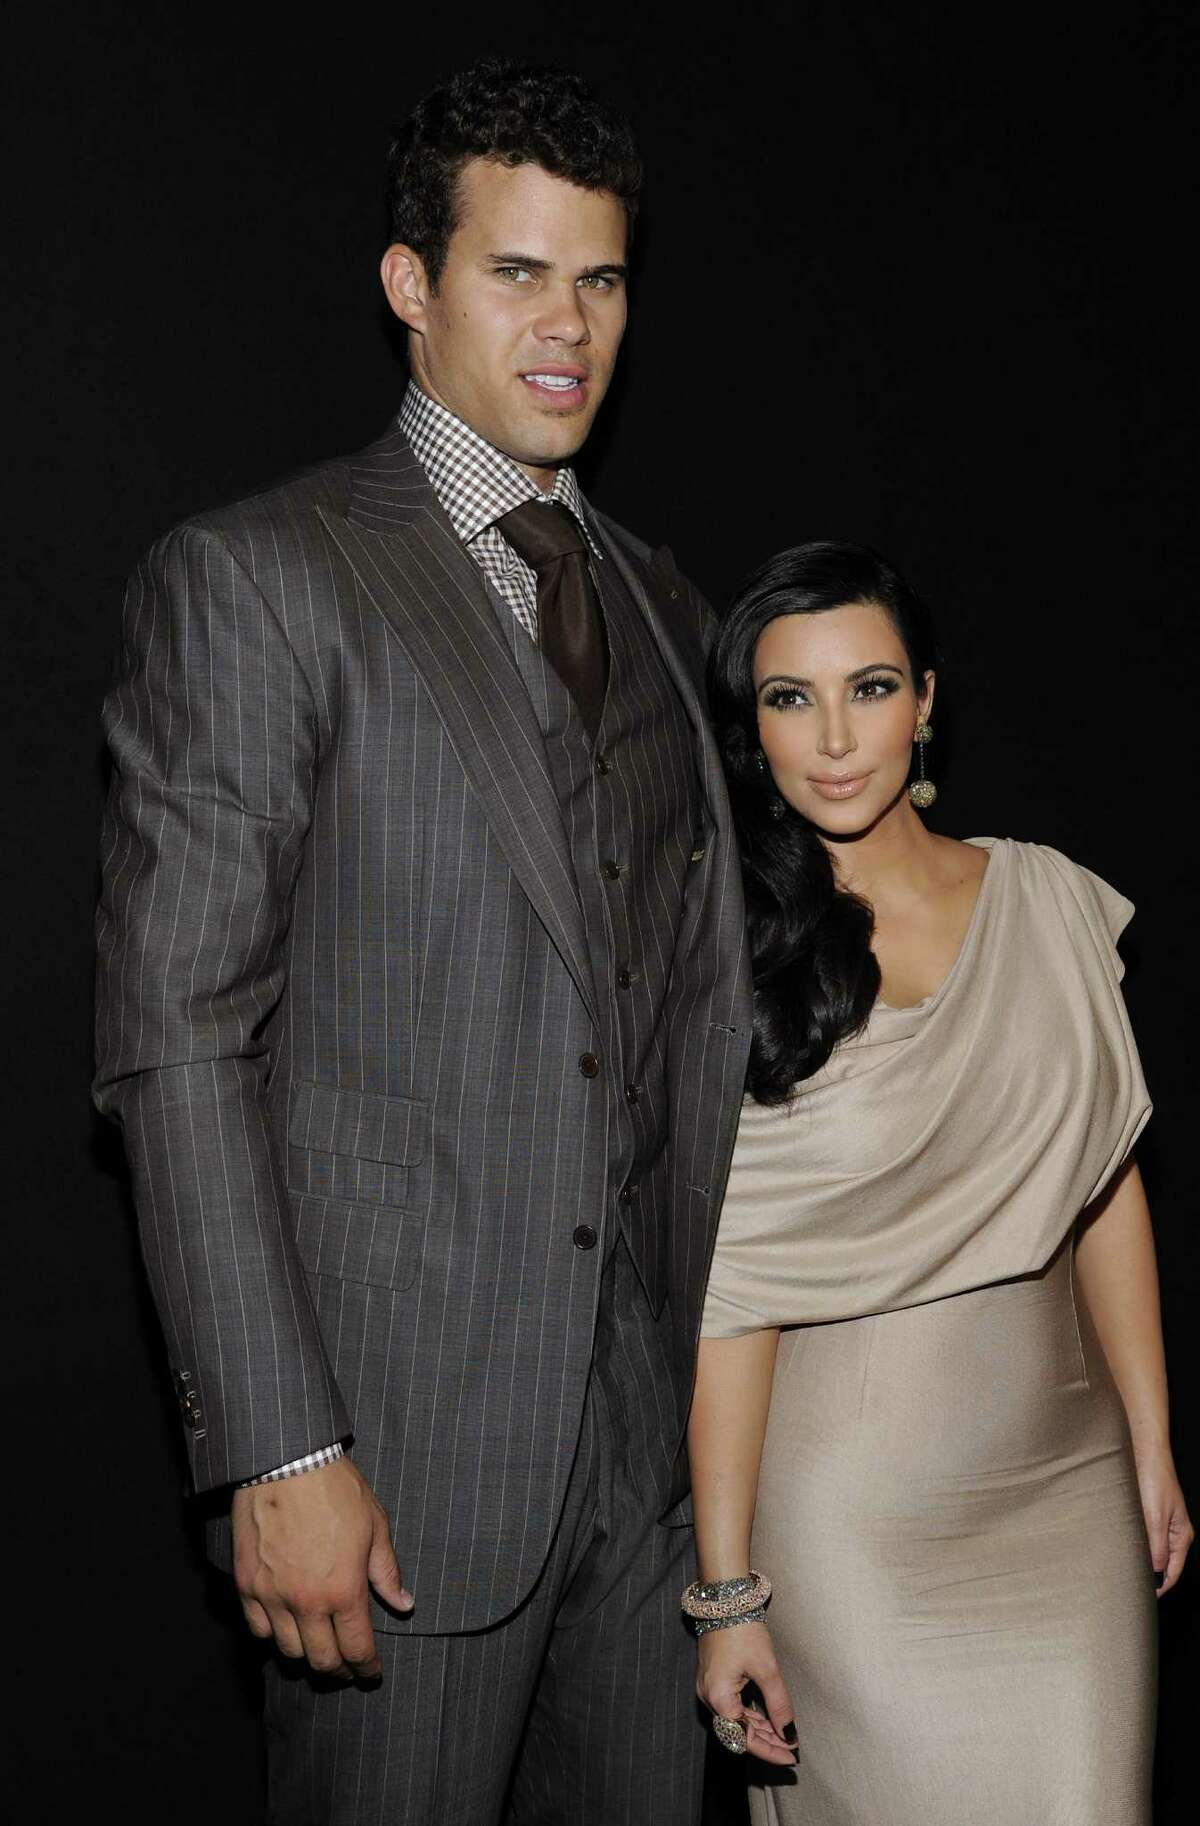 Kim Kardashian and Kris Humphries were married in 2011. She filed for divorce later that year and now their divorce settlement has been approved.